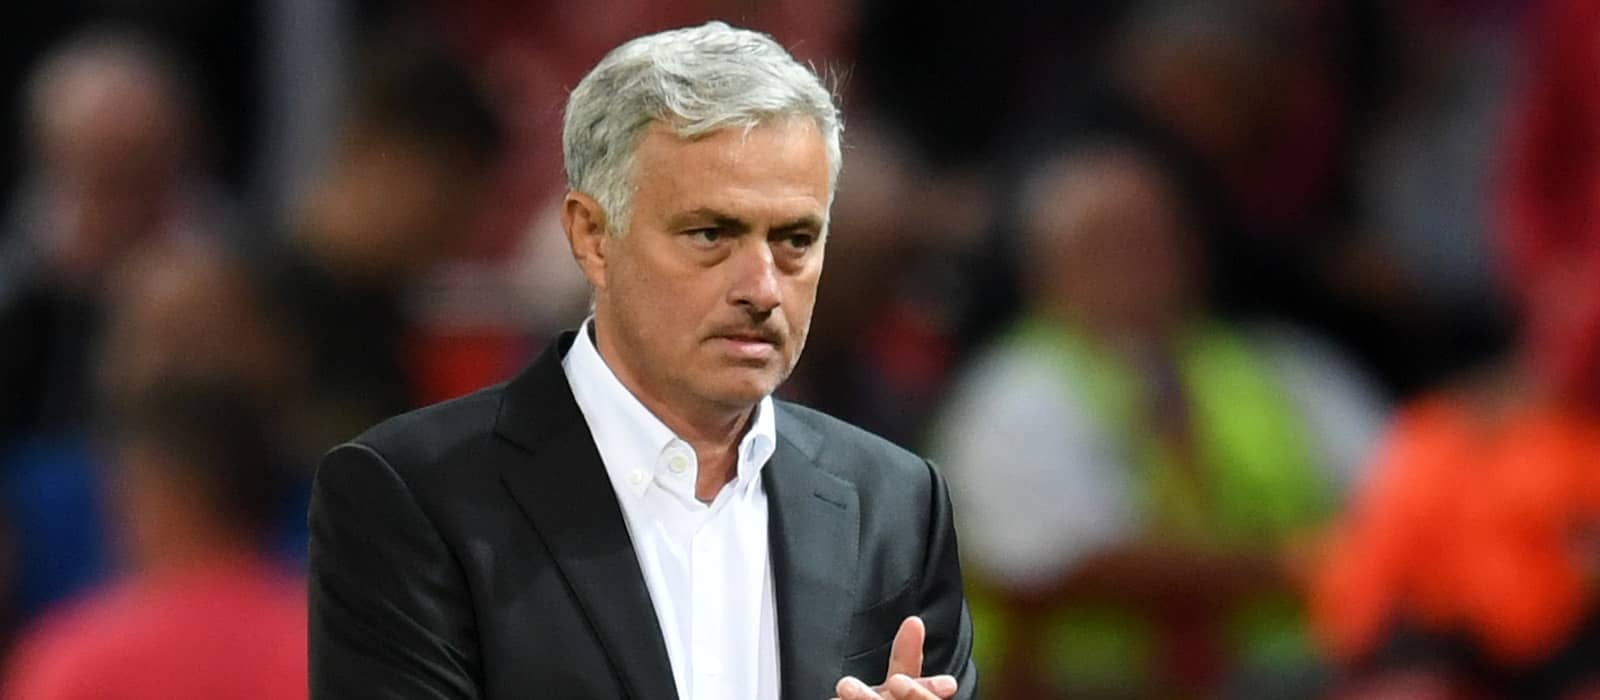 Alan Shearer: Jose Mourinho will not last at Manchester United